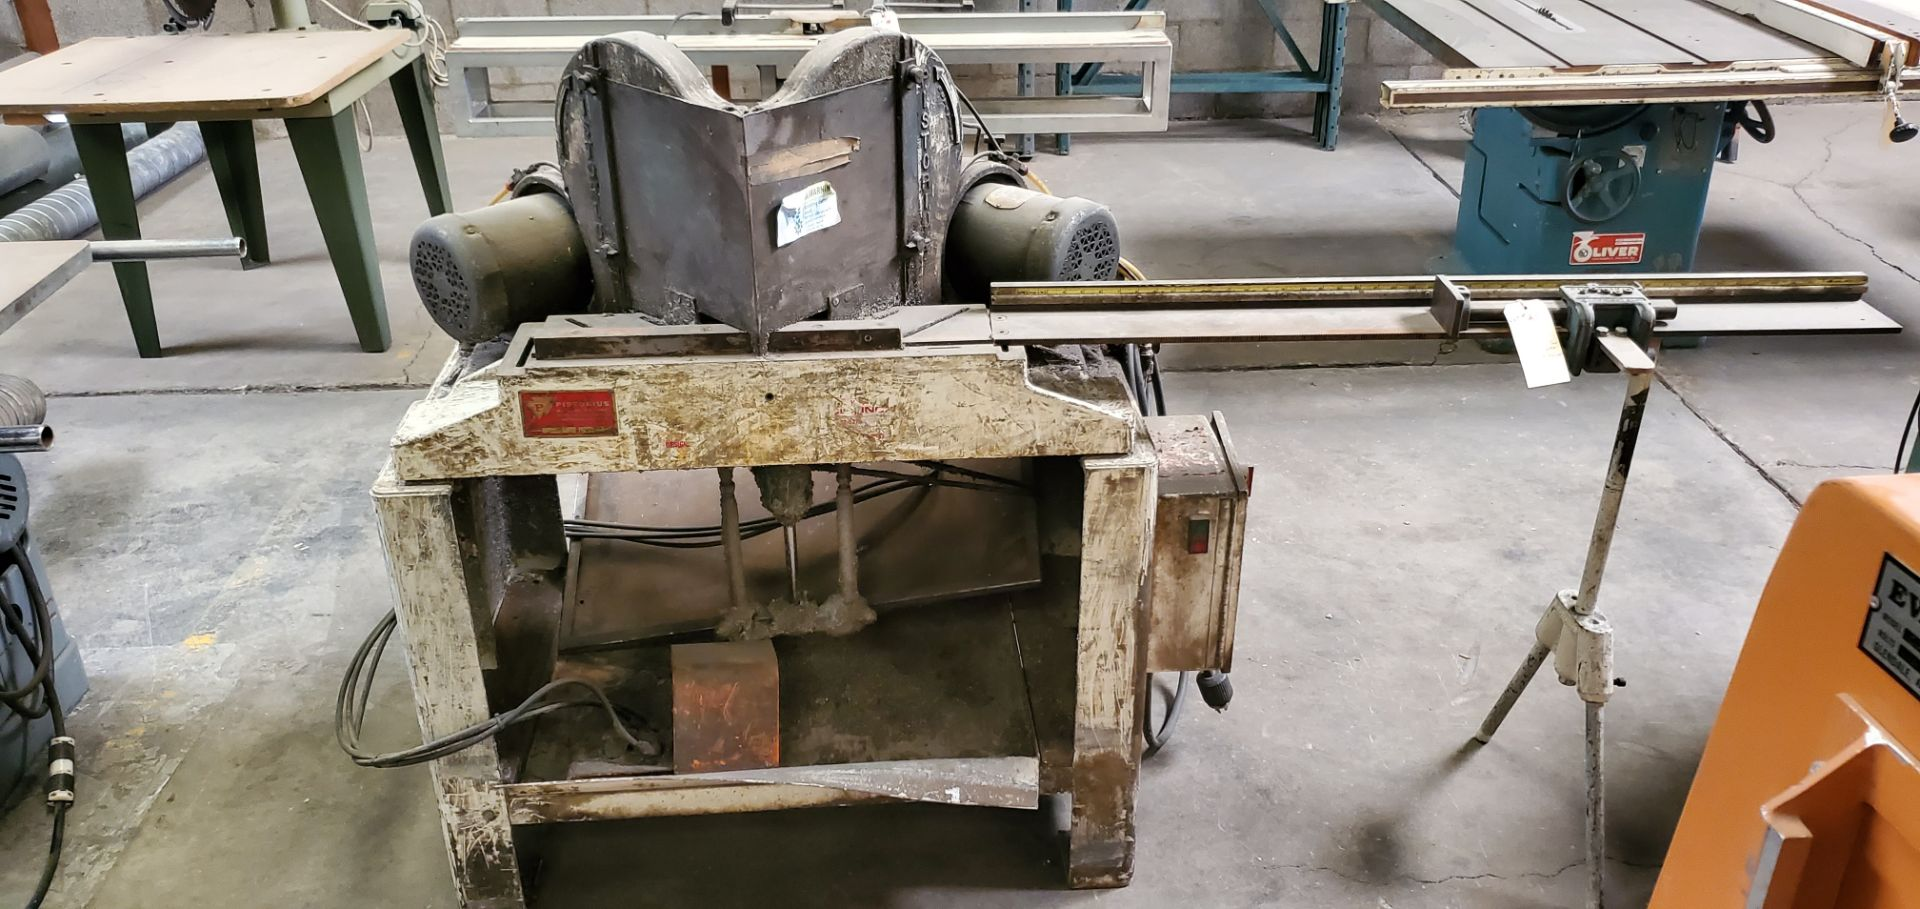 Lot 23 - Pistorius 45 Degree Double Miter Saw W/Fence System, Model #MN/200, 2 - 1-1/2 HP 230/460 Volts 3